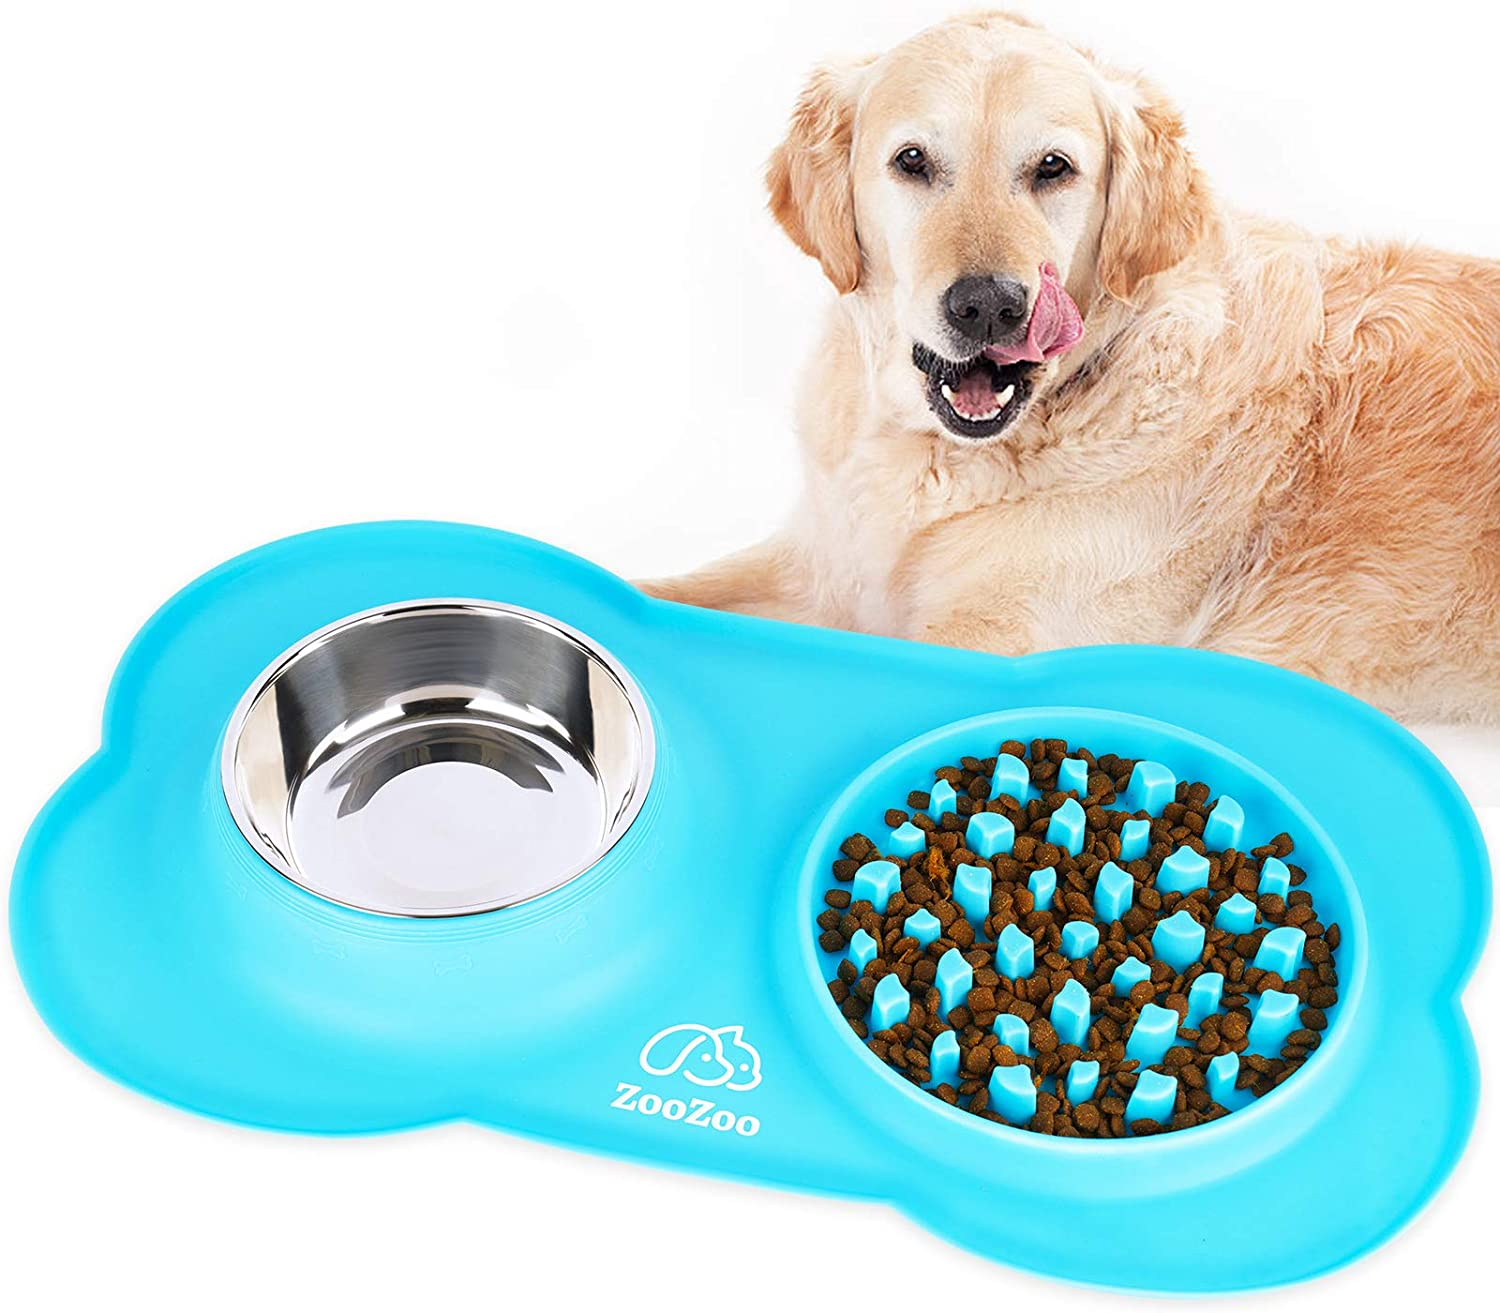 ZooZoo Large Slow Feeder Dog Bowl Mat Soft Silicone Stainless Steel Food Water Tray Prevent Bloat Choke Anti-Overflow Non-Skid Interactive Fun Cat Pet Accessory Healthy Diet Slow Eating Easy Clean Pad